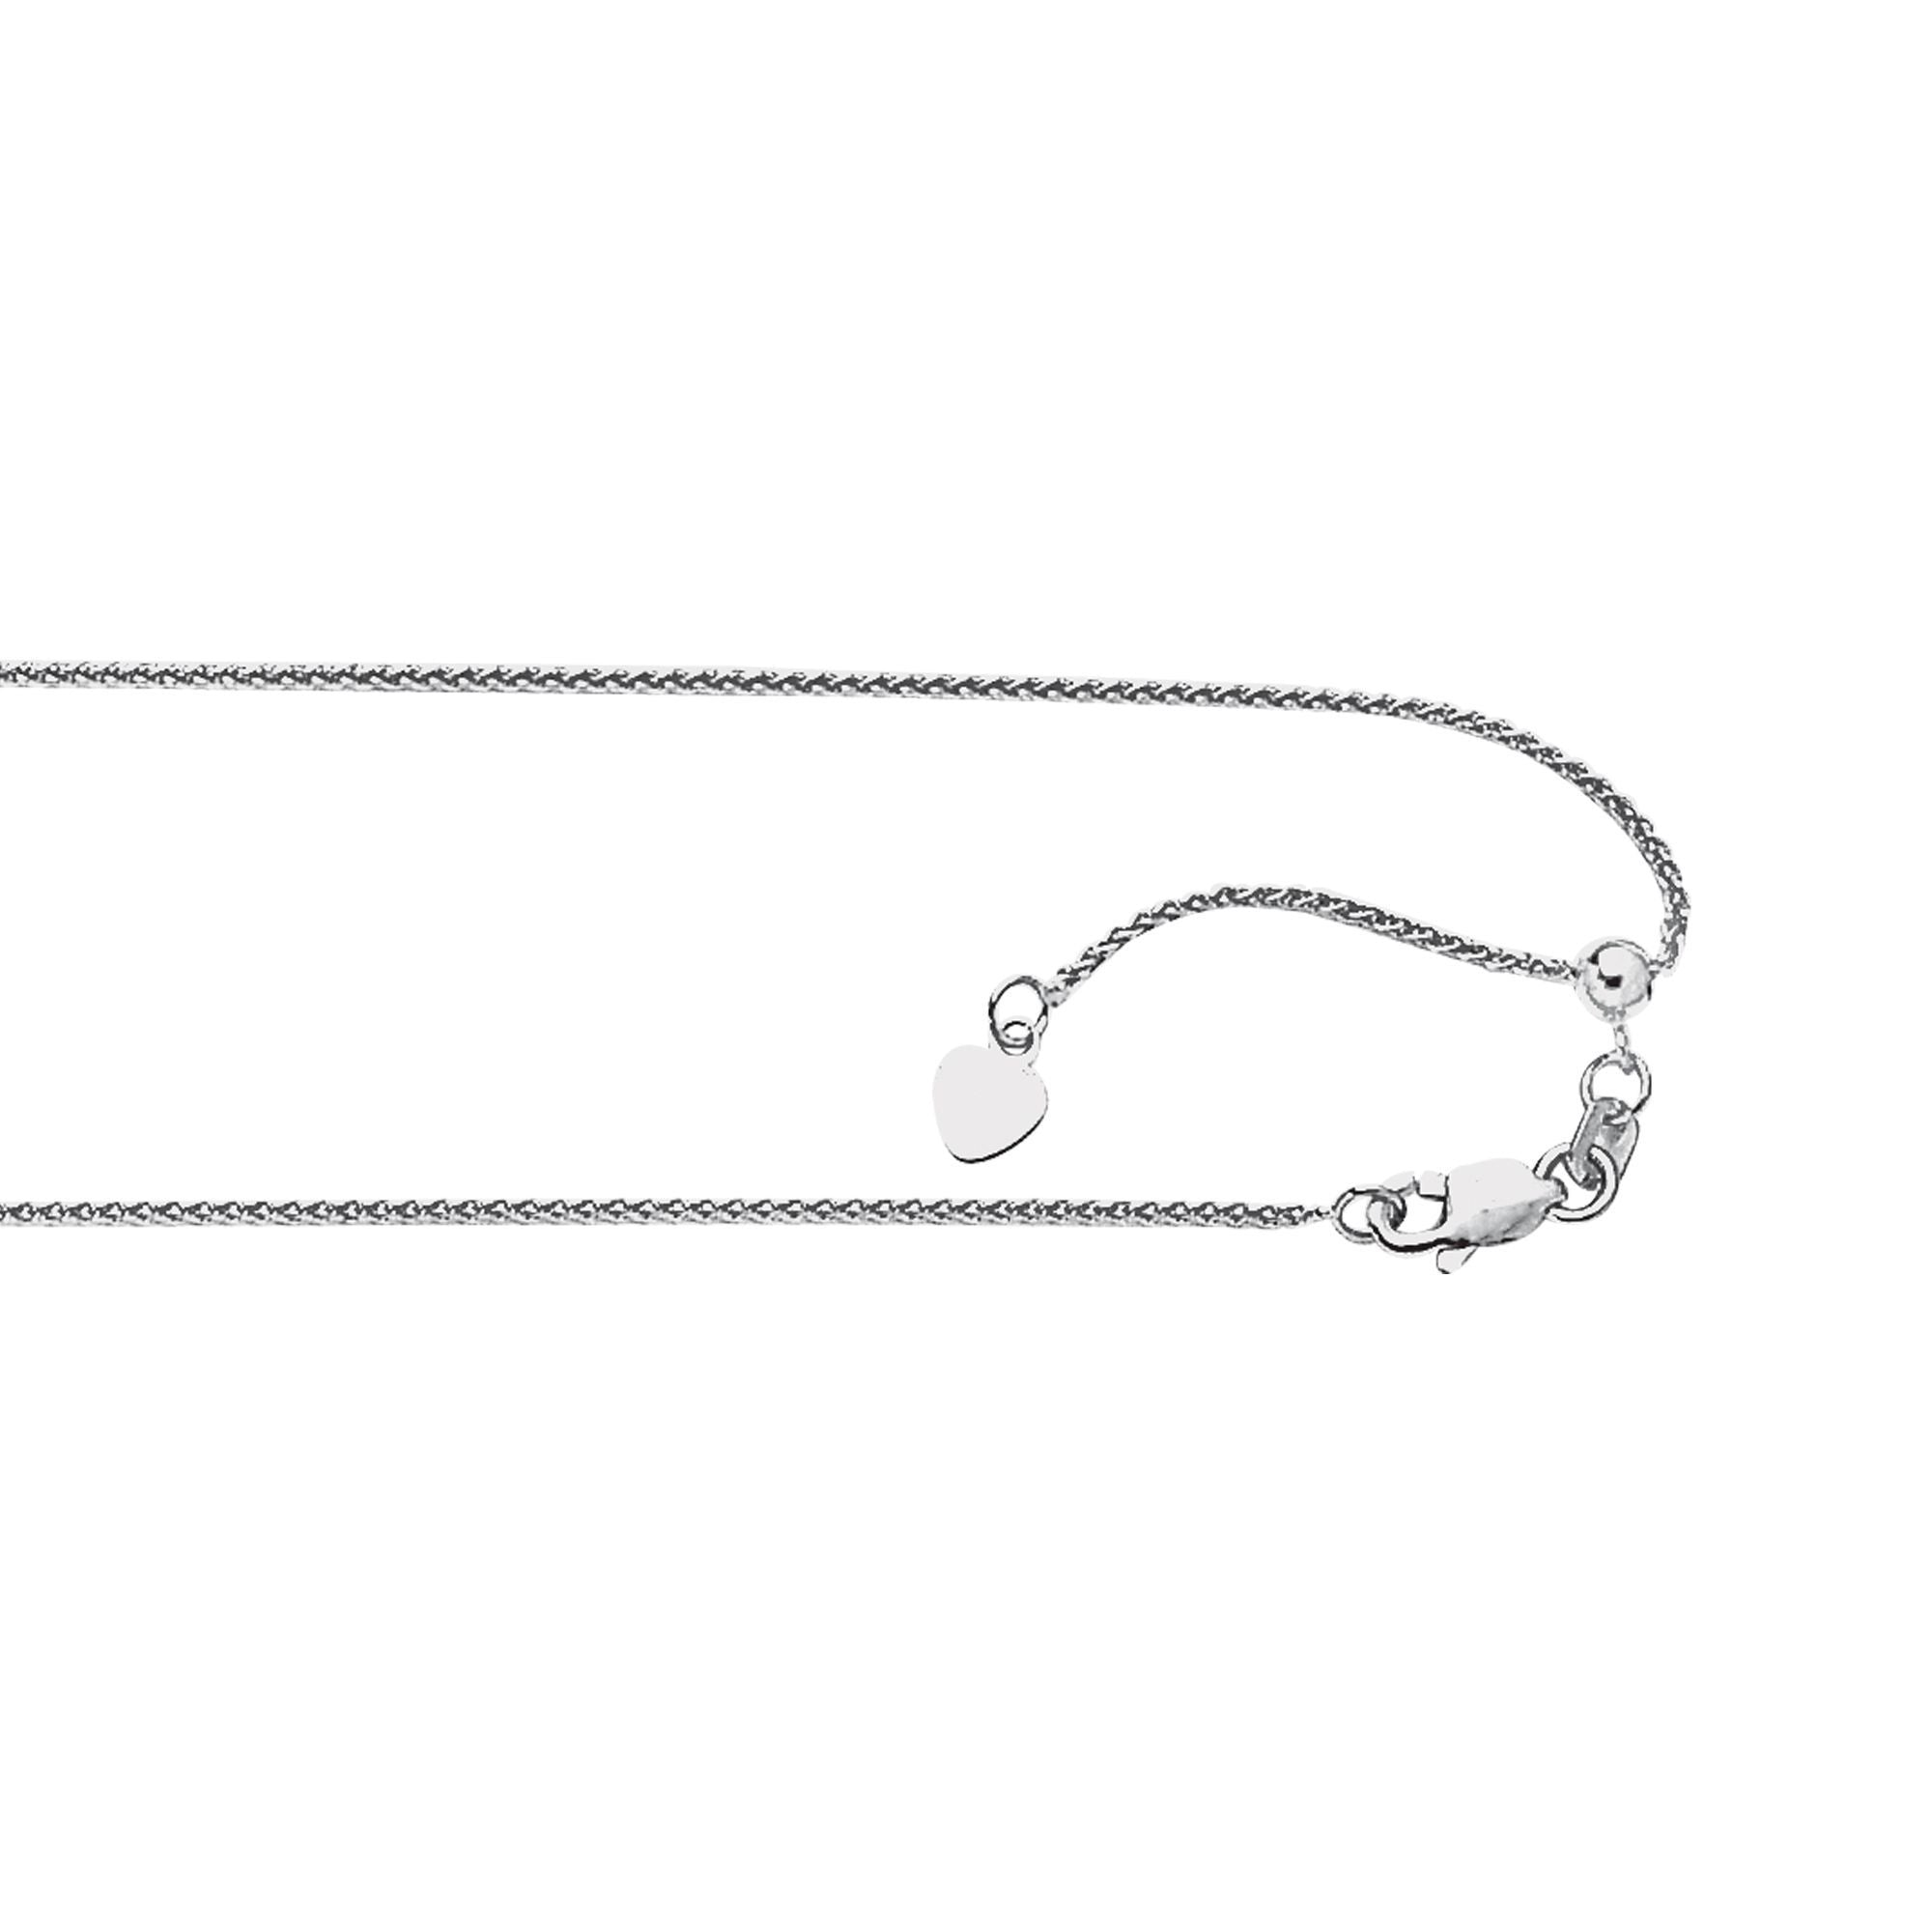 14K White Gold Wheat Chain